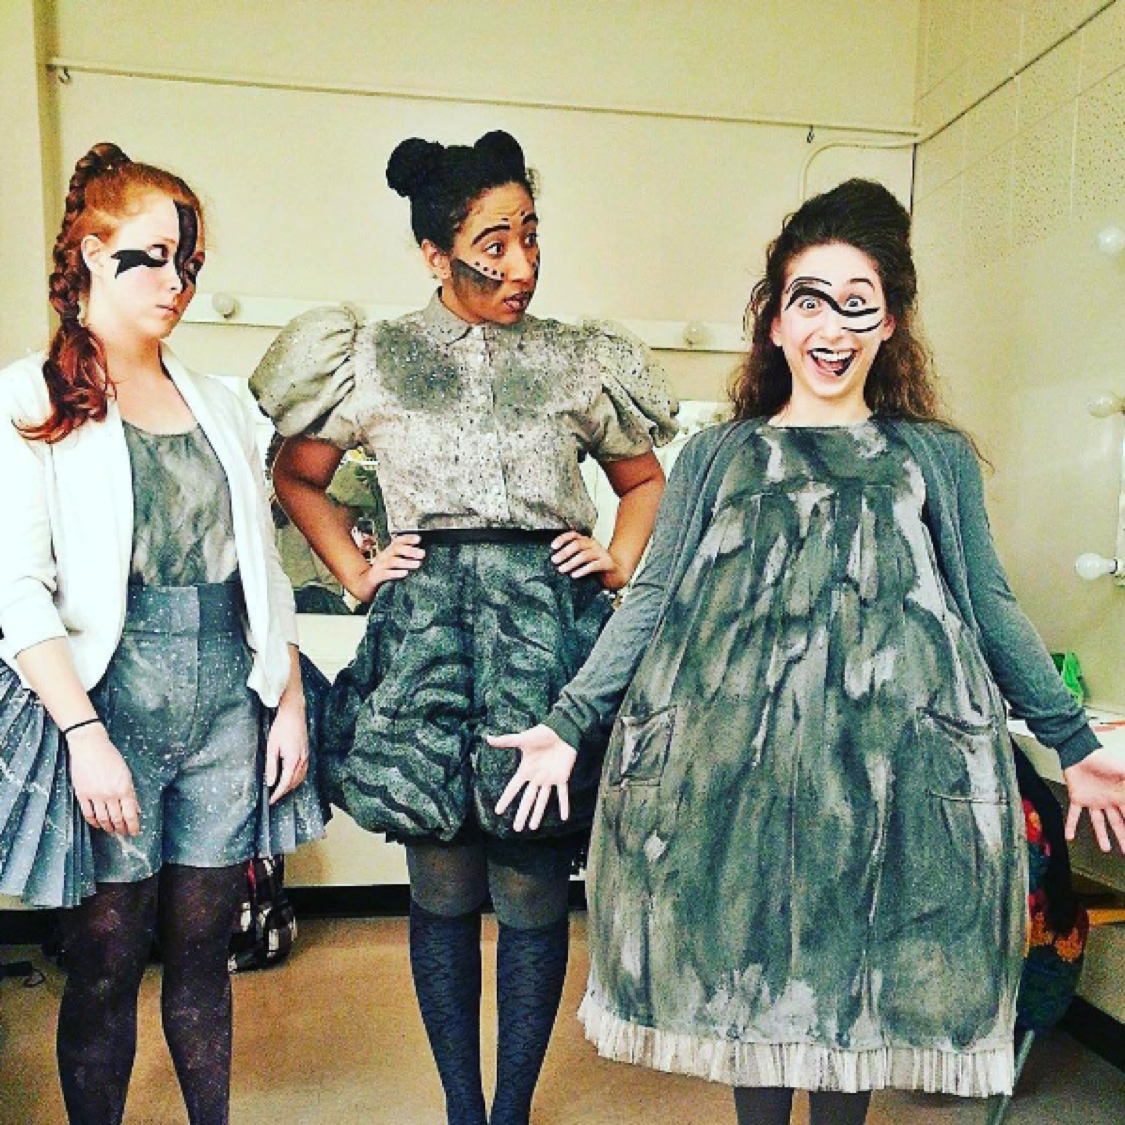 Meet the @theatreubc #eurydice ladies. #sassy #UBC #ubcartsculture #theatreubc #stagecrew #backstage #ubcfun